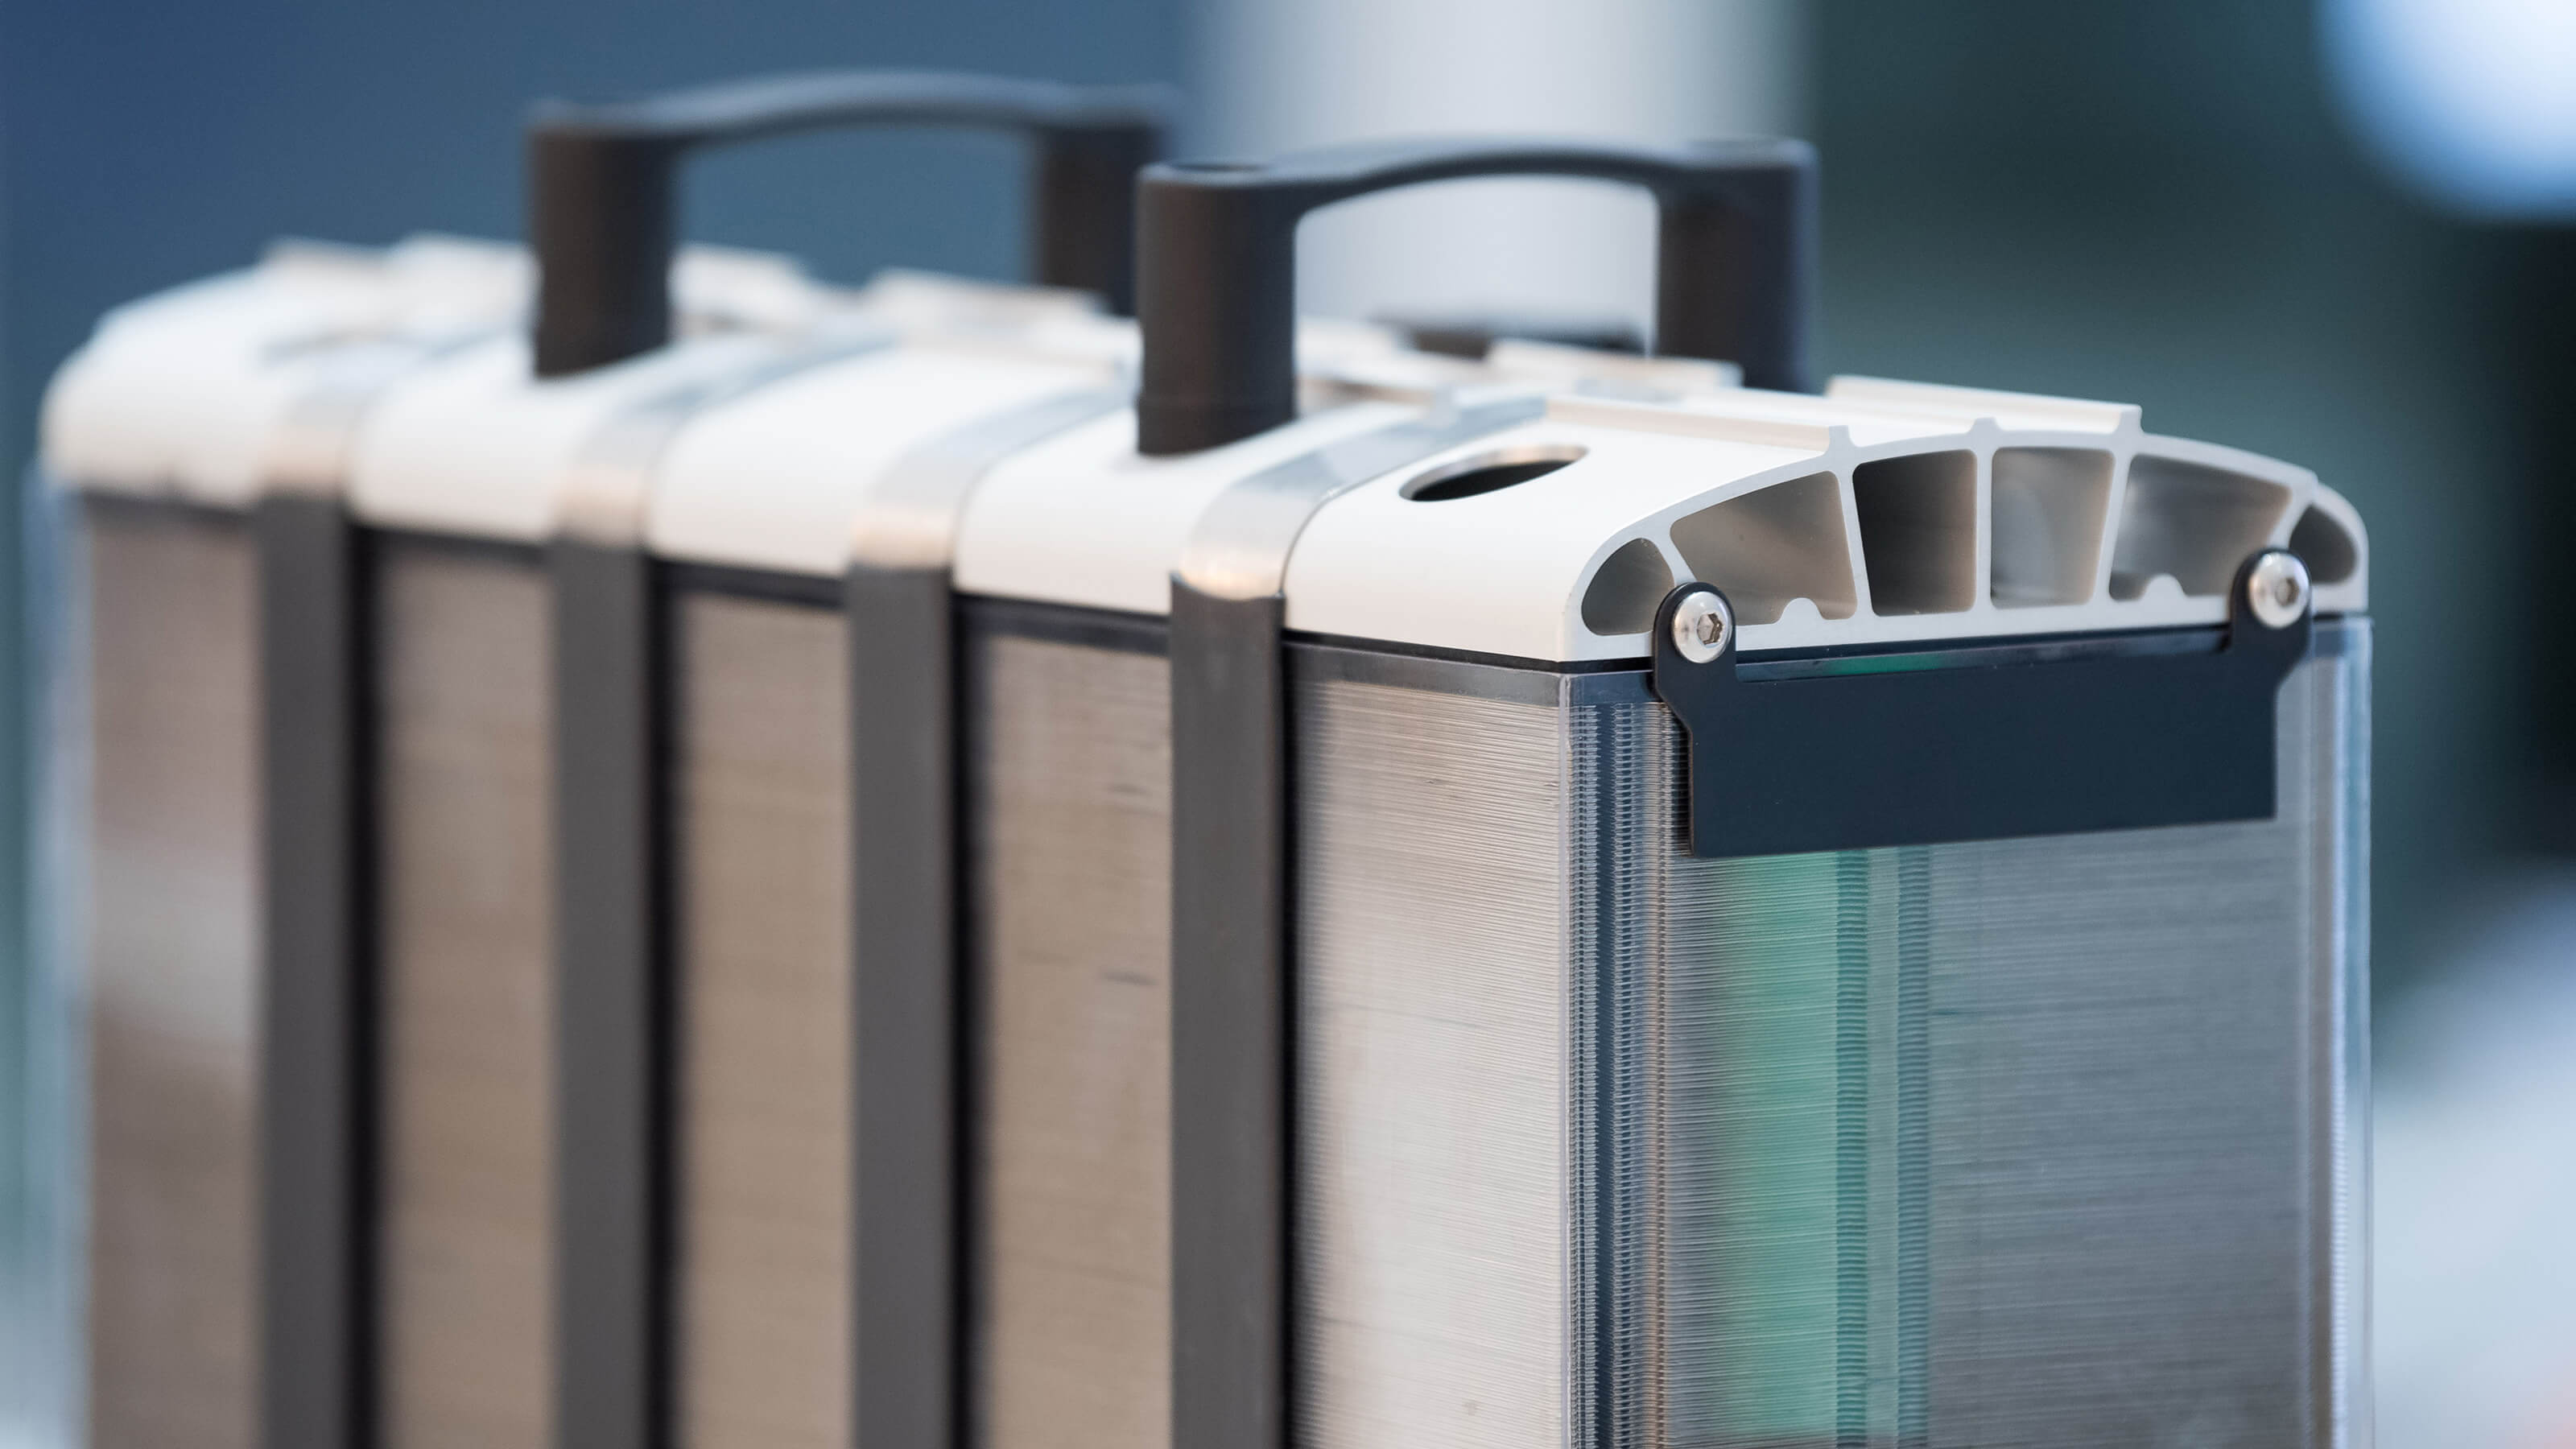 For the electrification of heavy duty traffic: the Bosch fuel cell stack